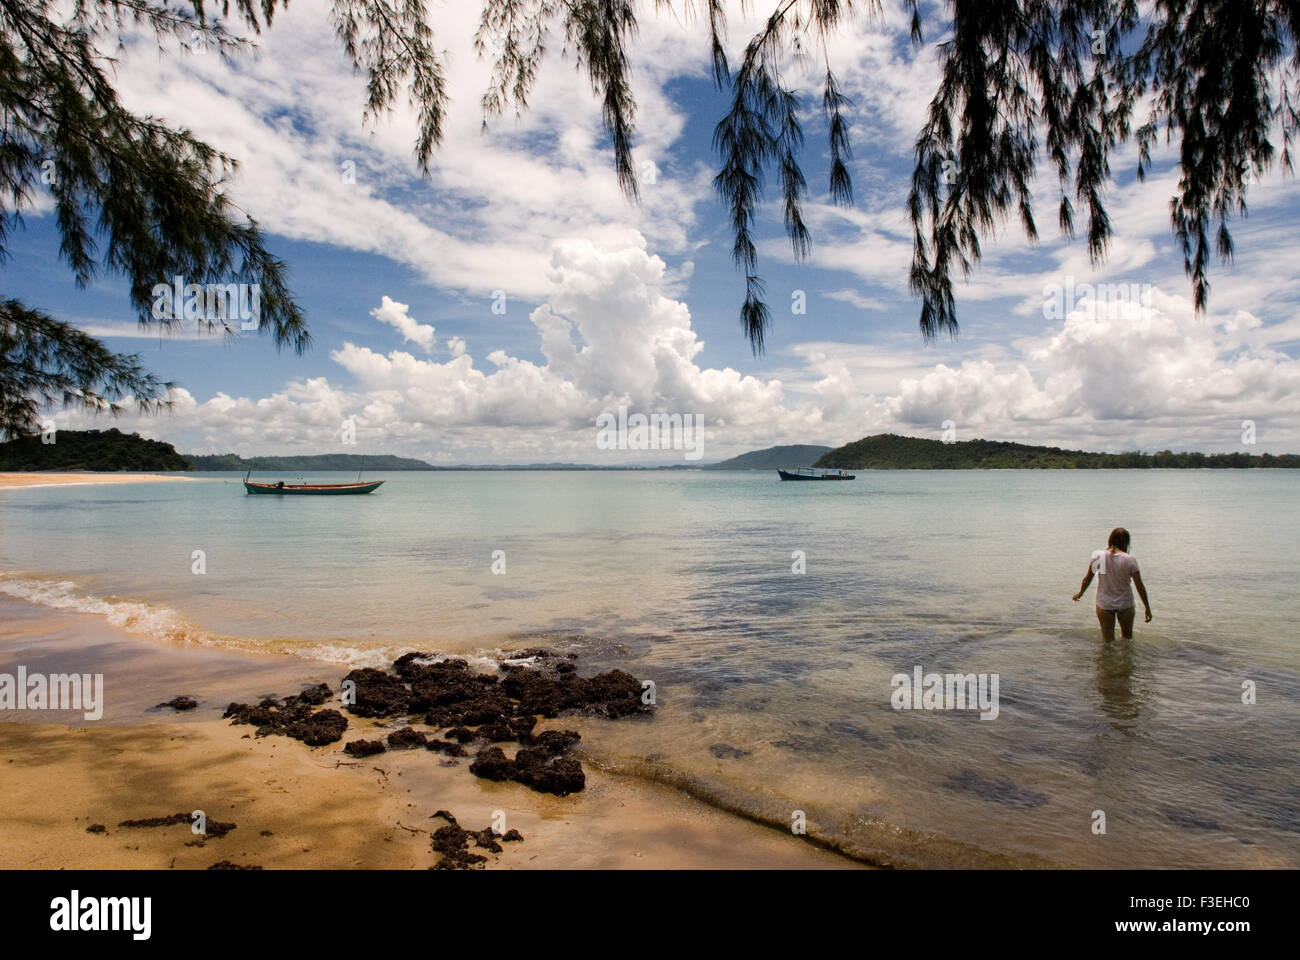 Swimming at the beach on the island of Koh Russei. Koh Russei is still living under the shadow of its former self, - Stock Image